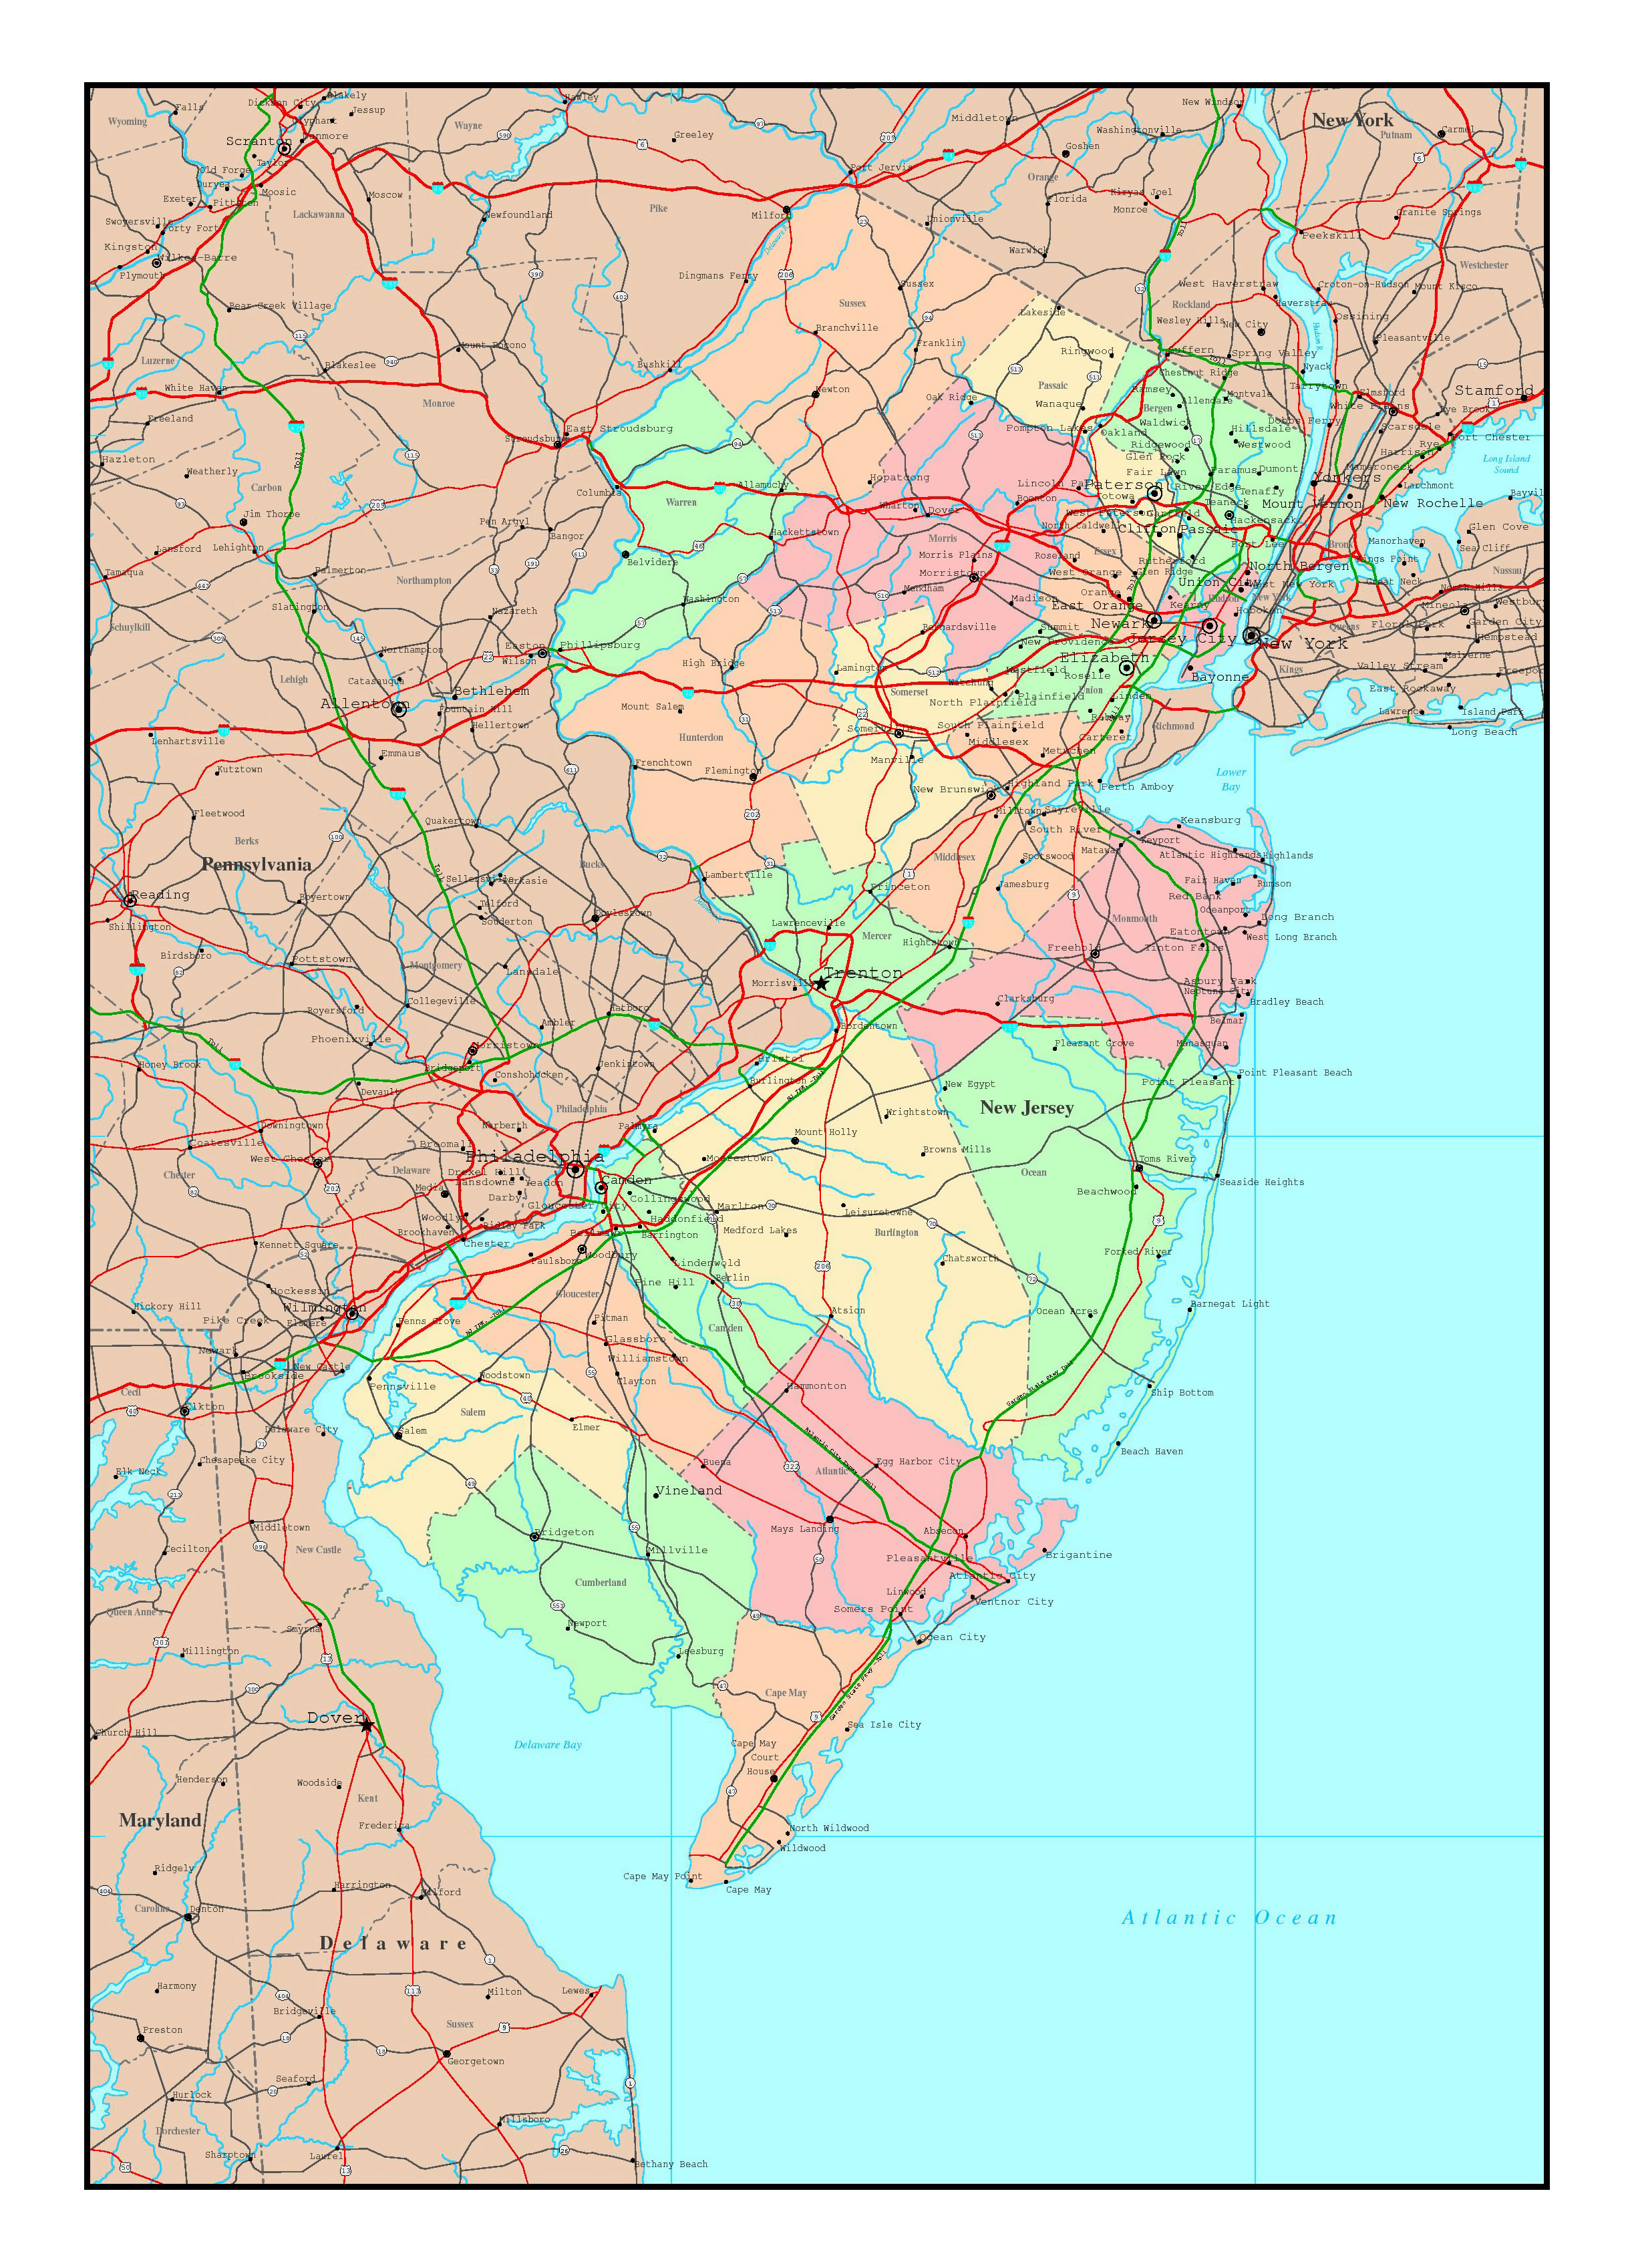 New Jersey On Map Of Usa.Large Detailed Administrative Map Of New Jersey State With Roads